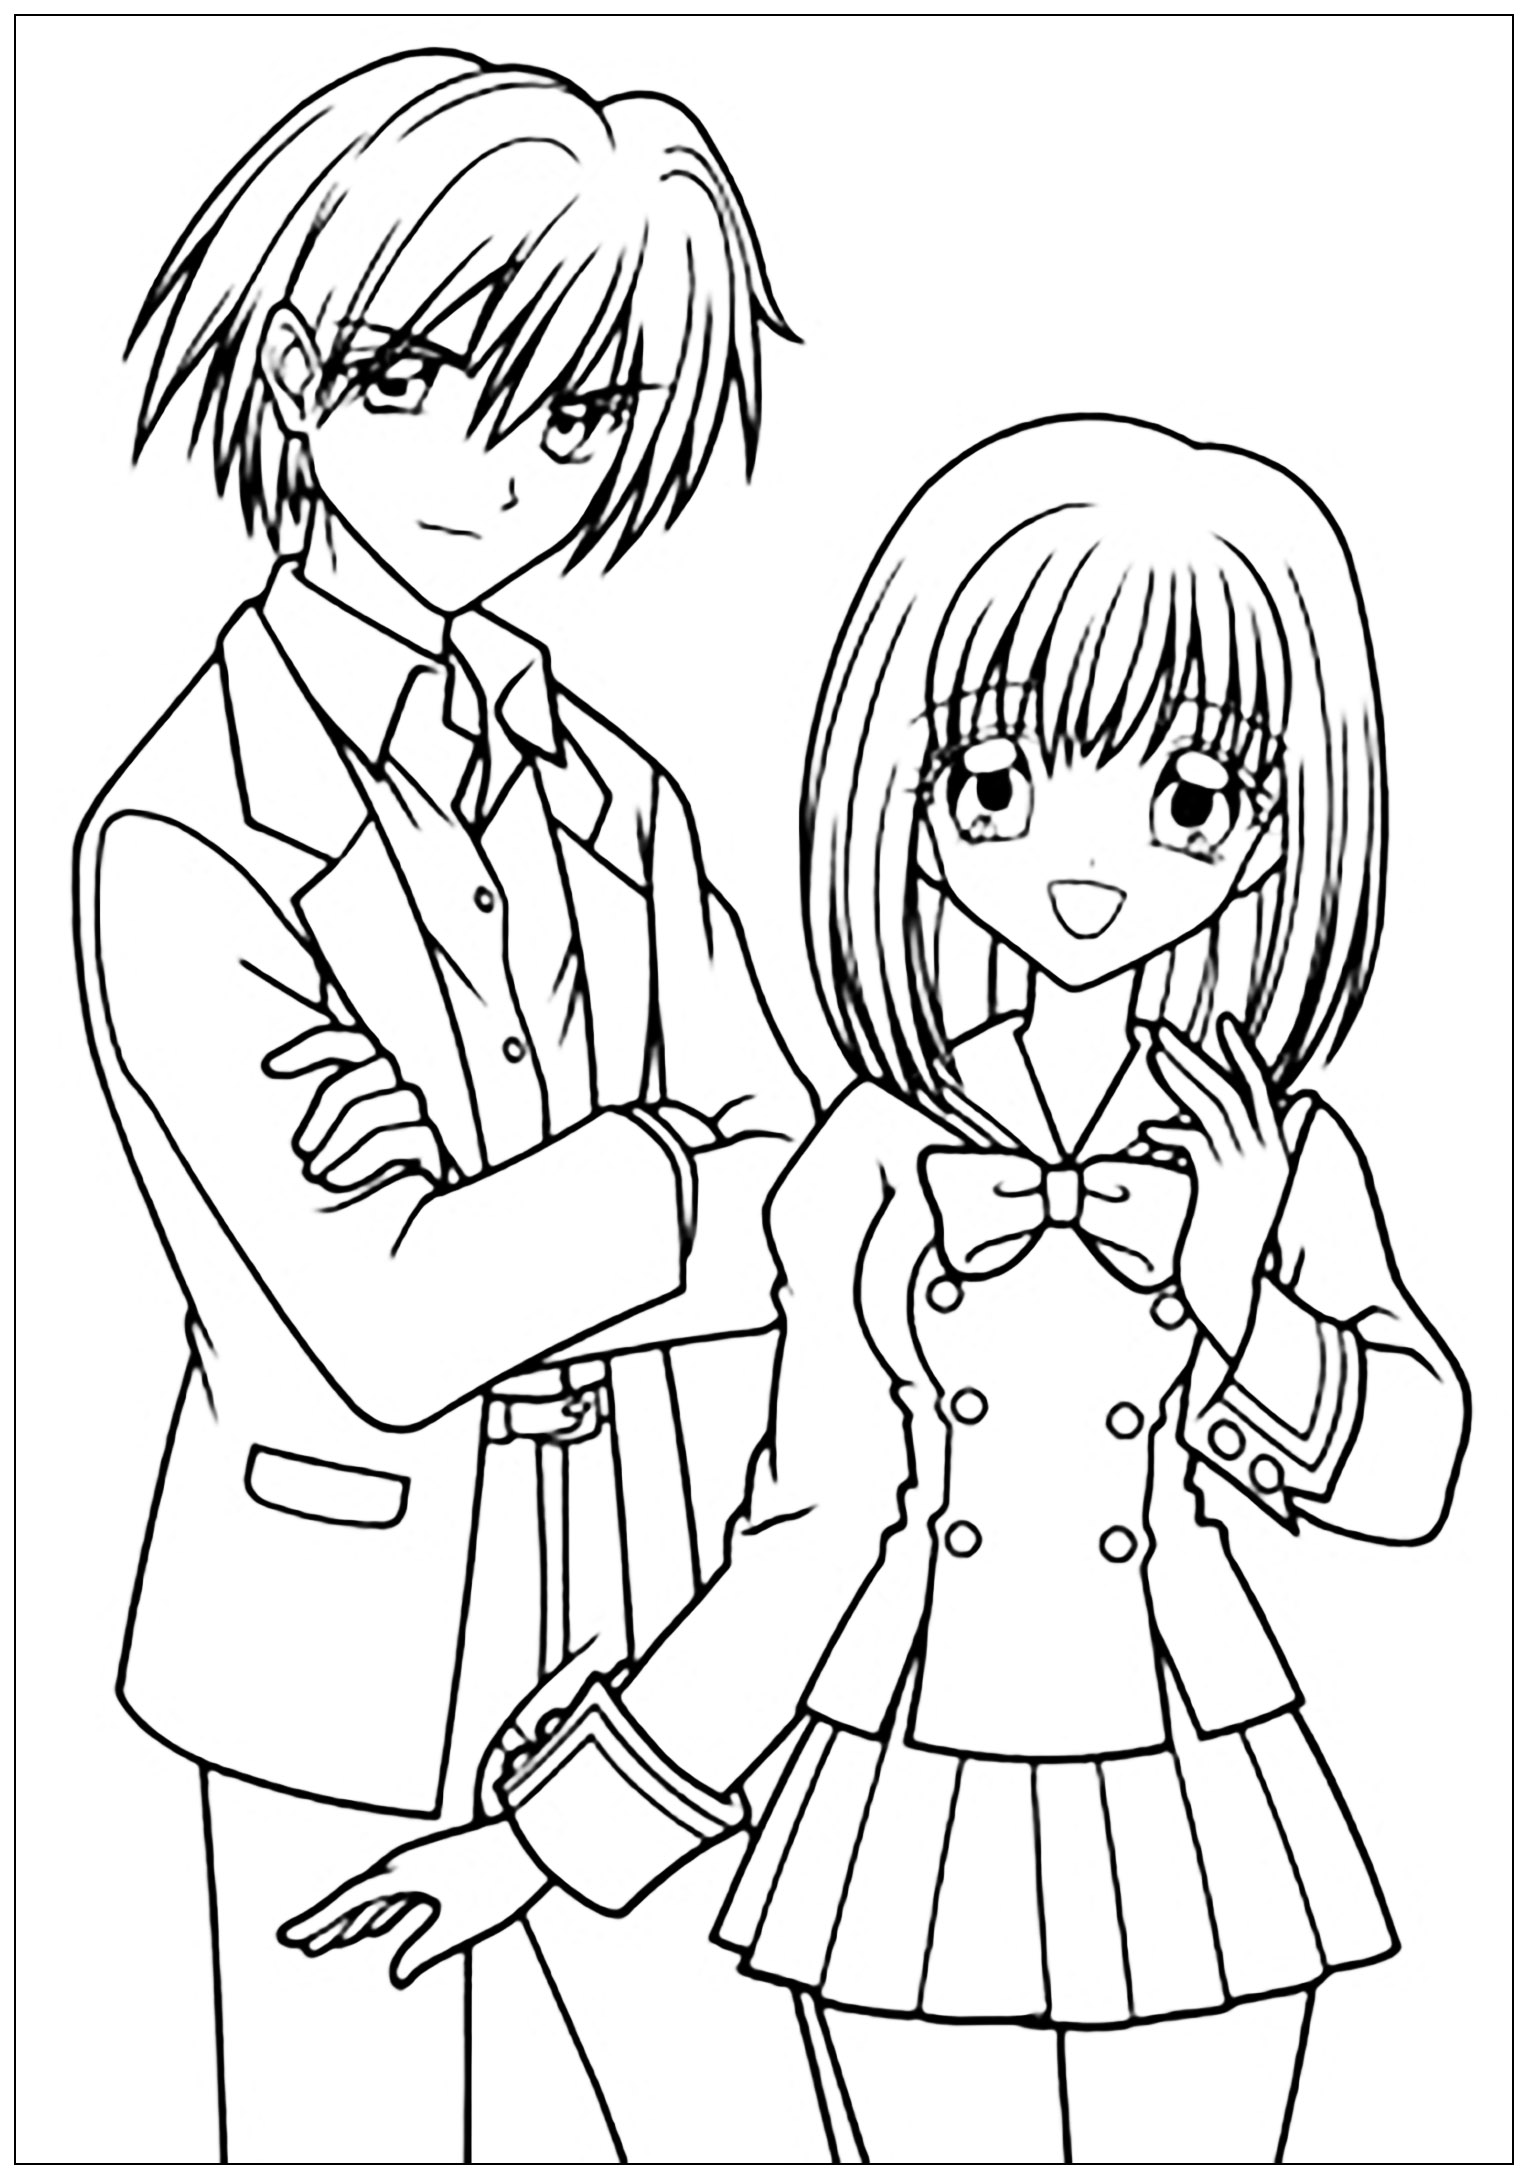 Manga Drawing Boy And Girl In School Suit